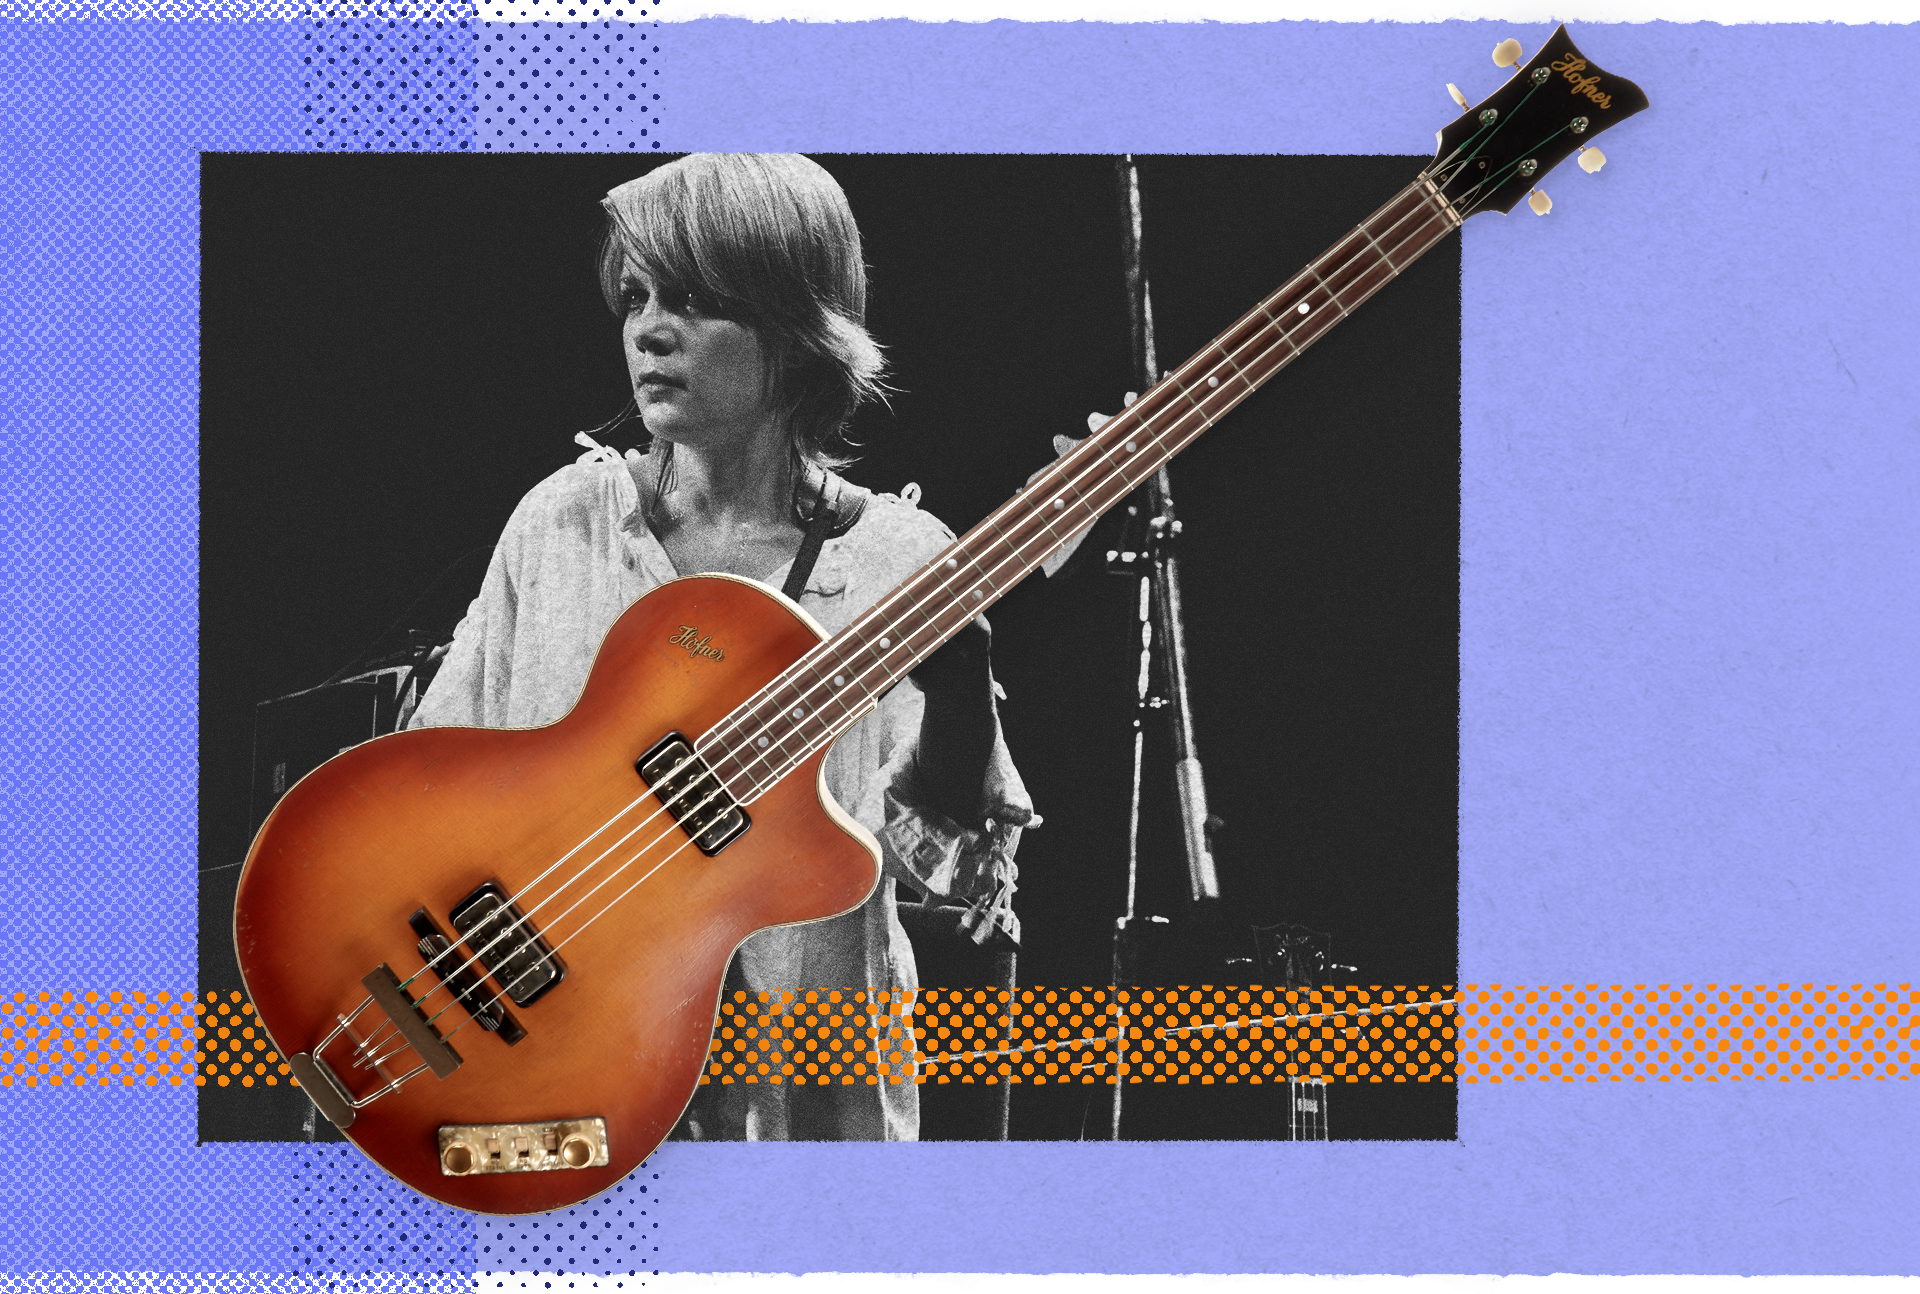 Tina Weymouth with the Hofner 500/2 Club Bass